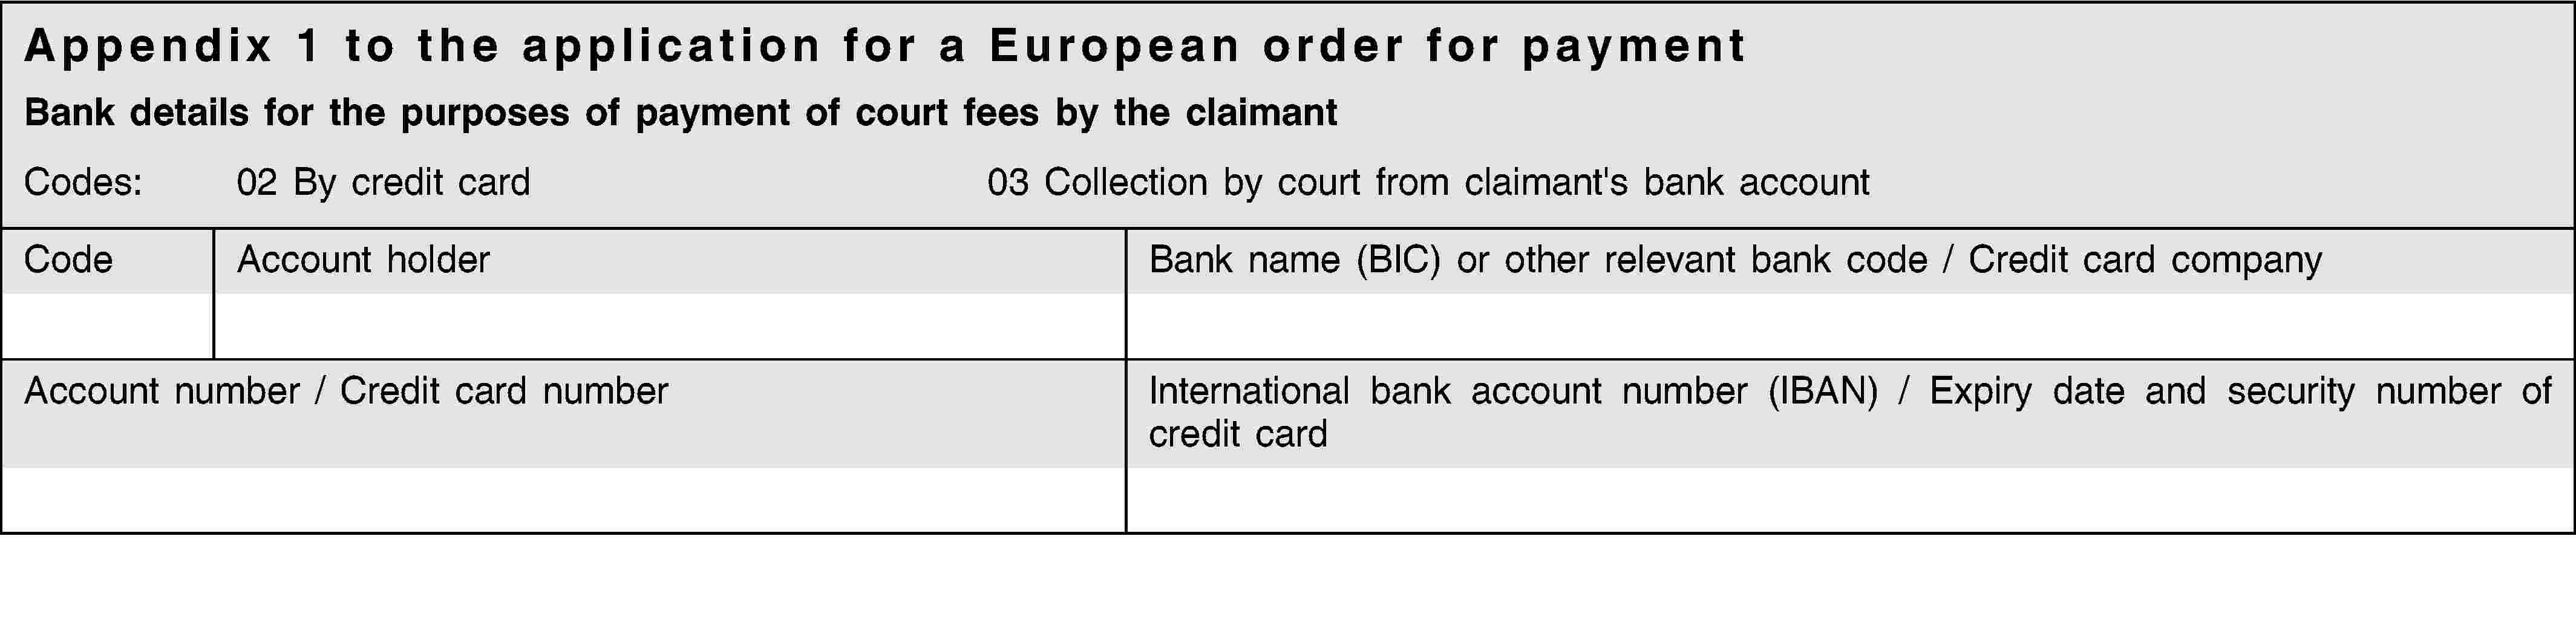 Appendix 1 to the application for a European order for paymentBank details for the purposes of payment of court fees by the claimantCodes:02 By credit card03 Collection by court from claimant's bank accountCodeAccount holderBank name (BIC) or other relevant bank code / Credit card companyAccount number / Credit card numberInternational bank account number (IBAN) / Expiry date and security number of credit card